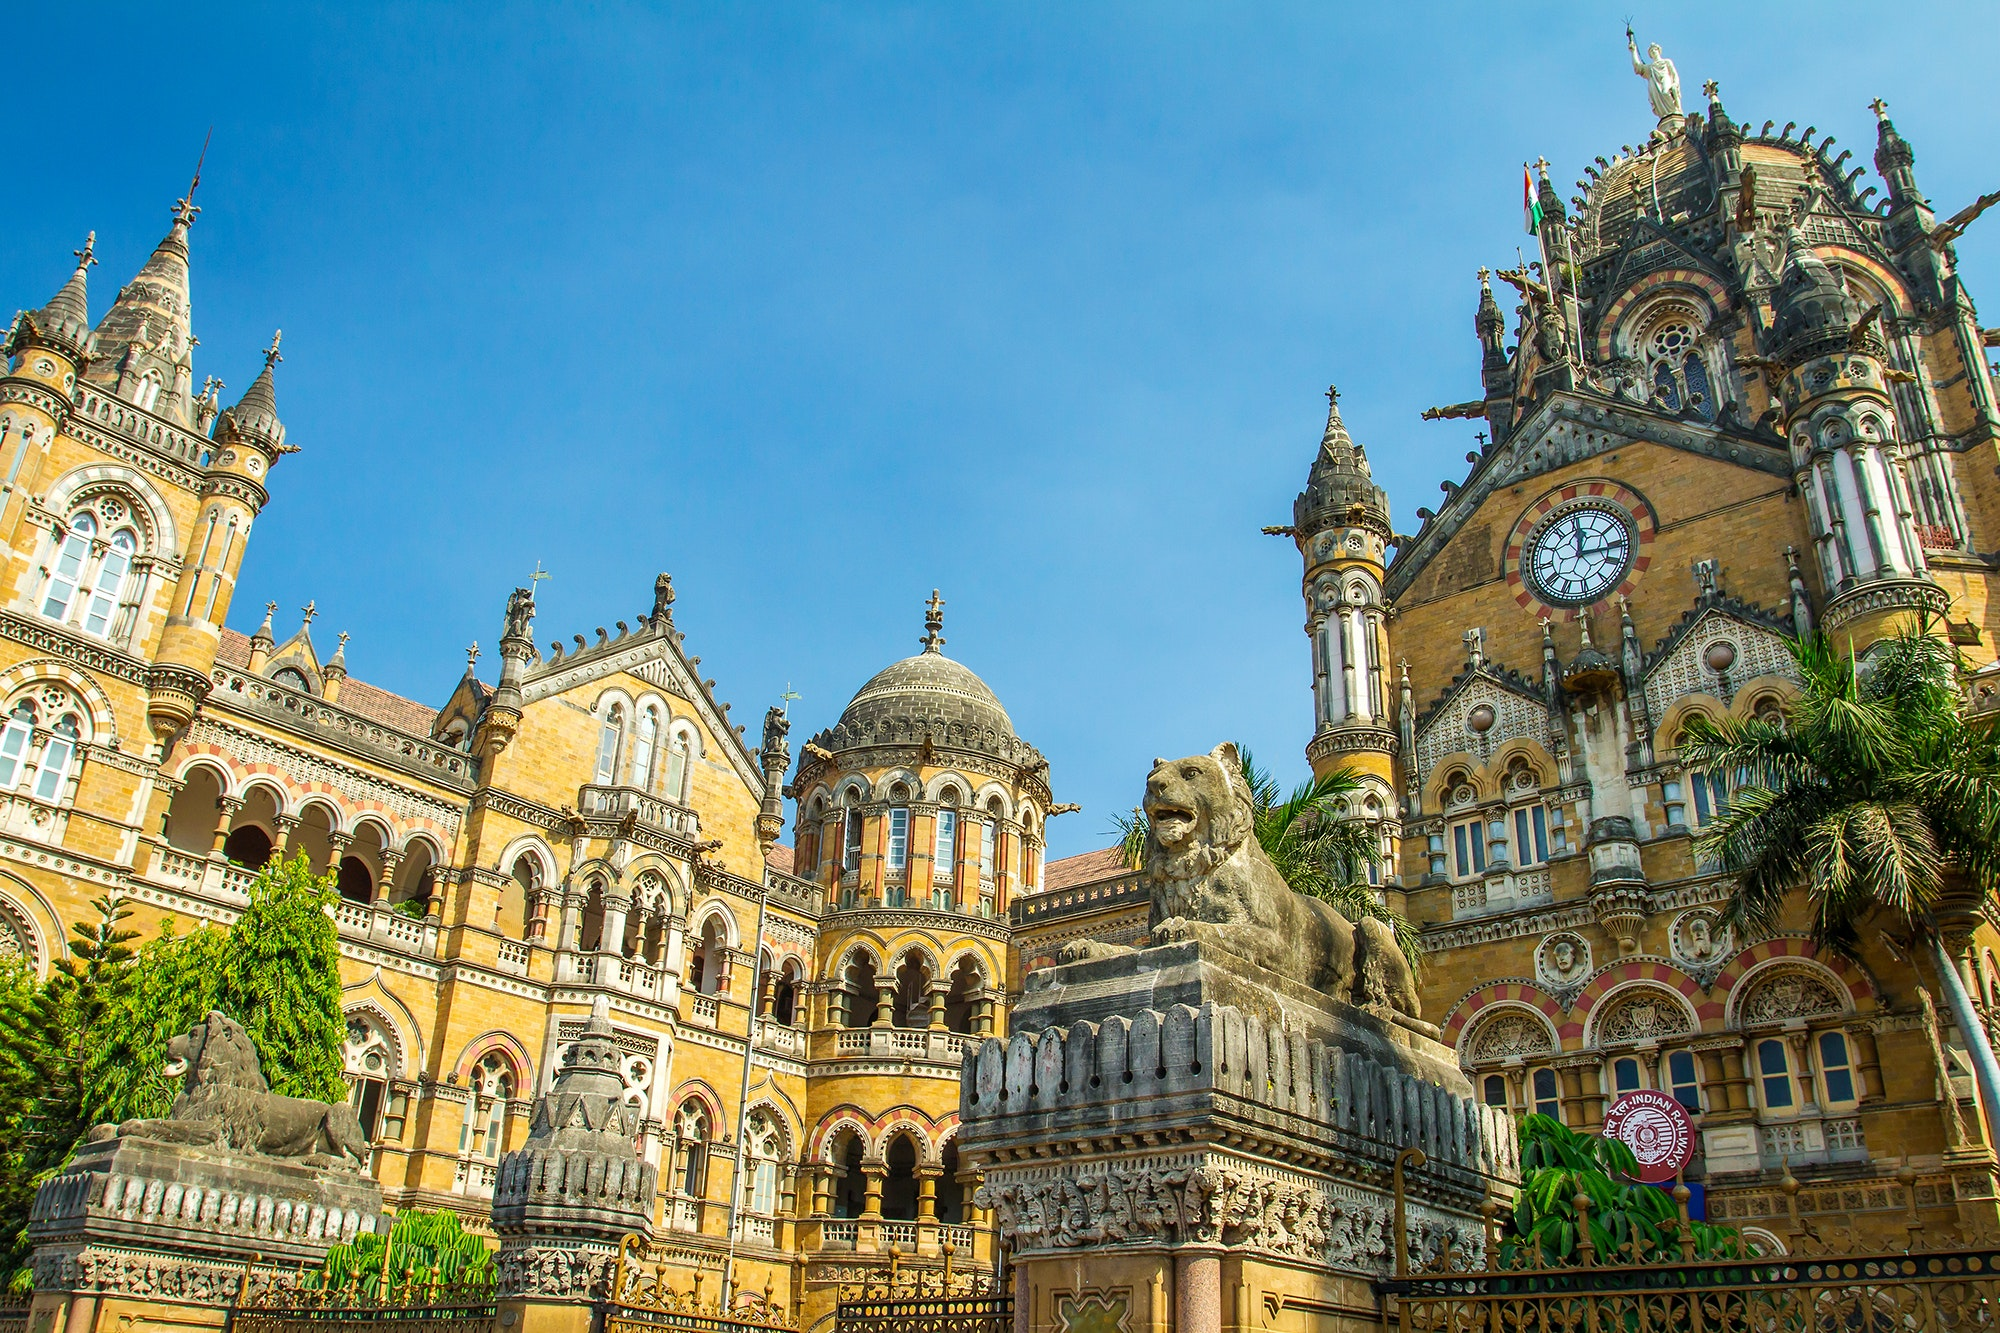 In addition to the Taj Mahal, you'll also visit sites like Mumbai's Victorian Chhatrapati Shivaji Terminus.